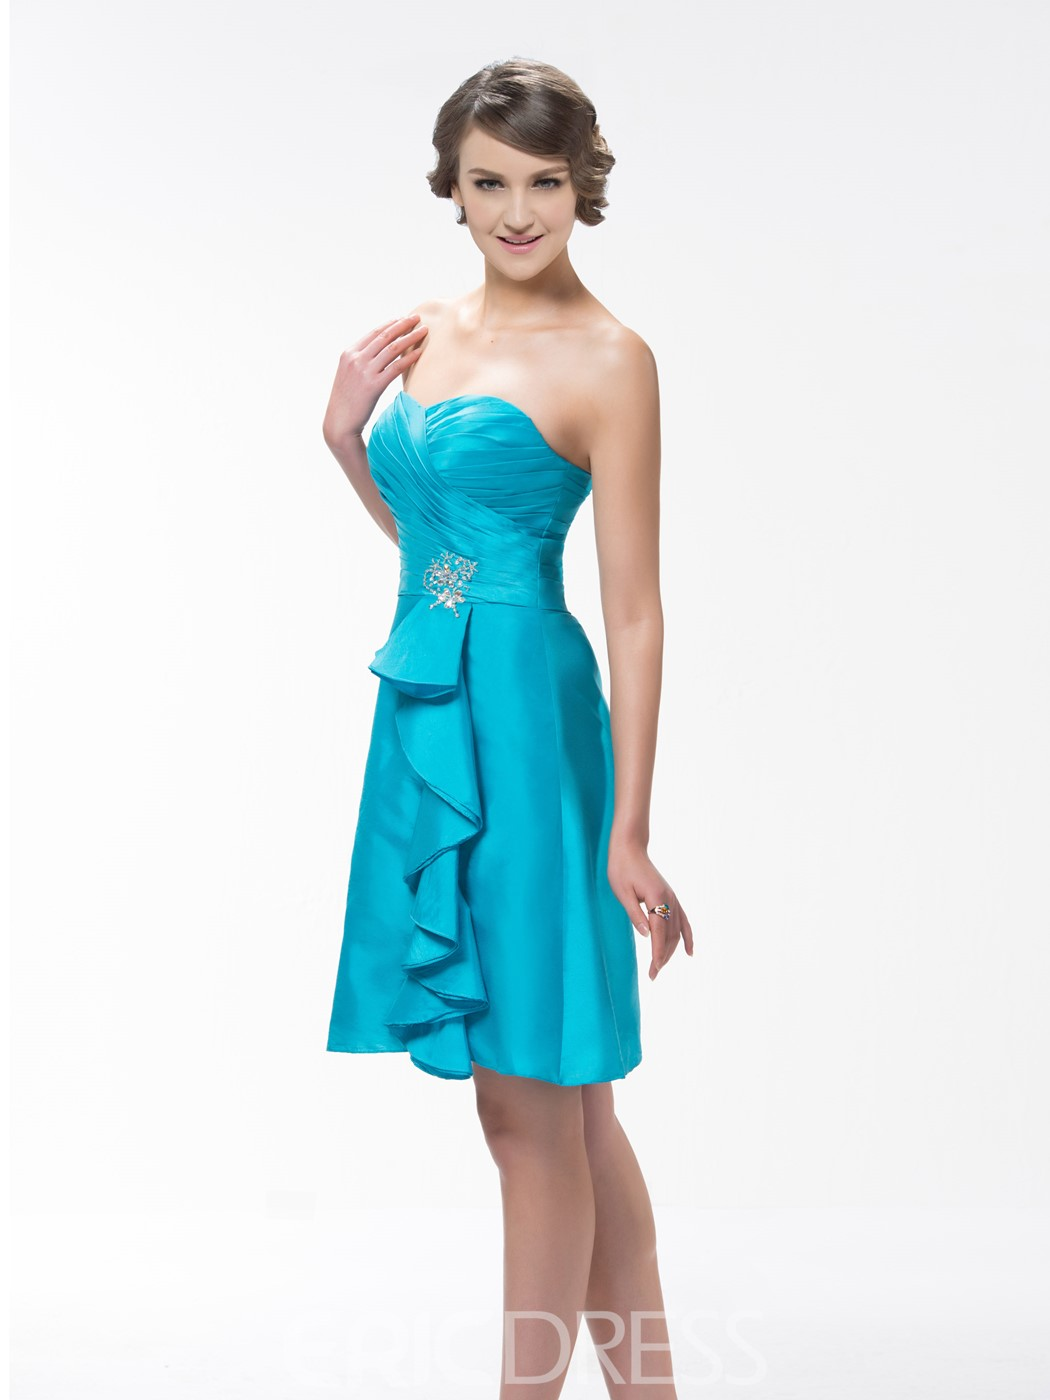 Concise A-Line Sweetheart Neck Knee-Length Bridesmaid Dress